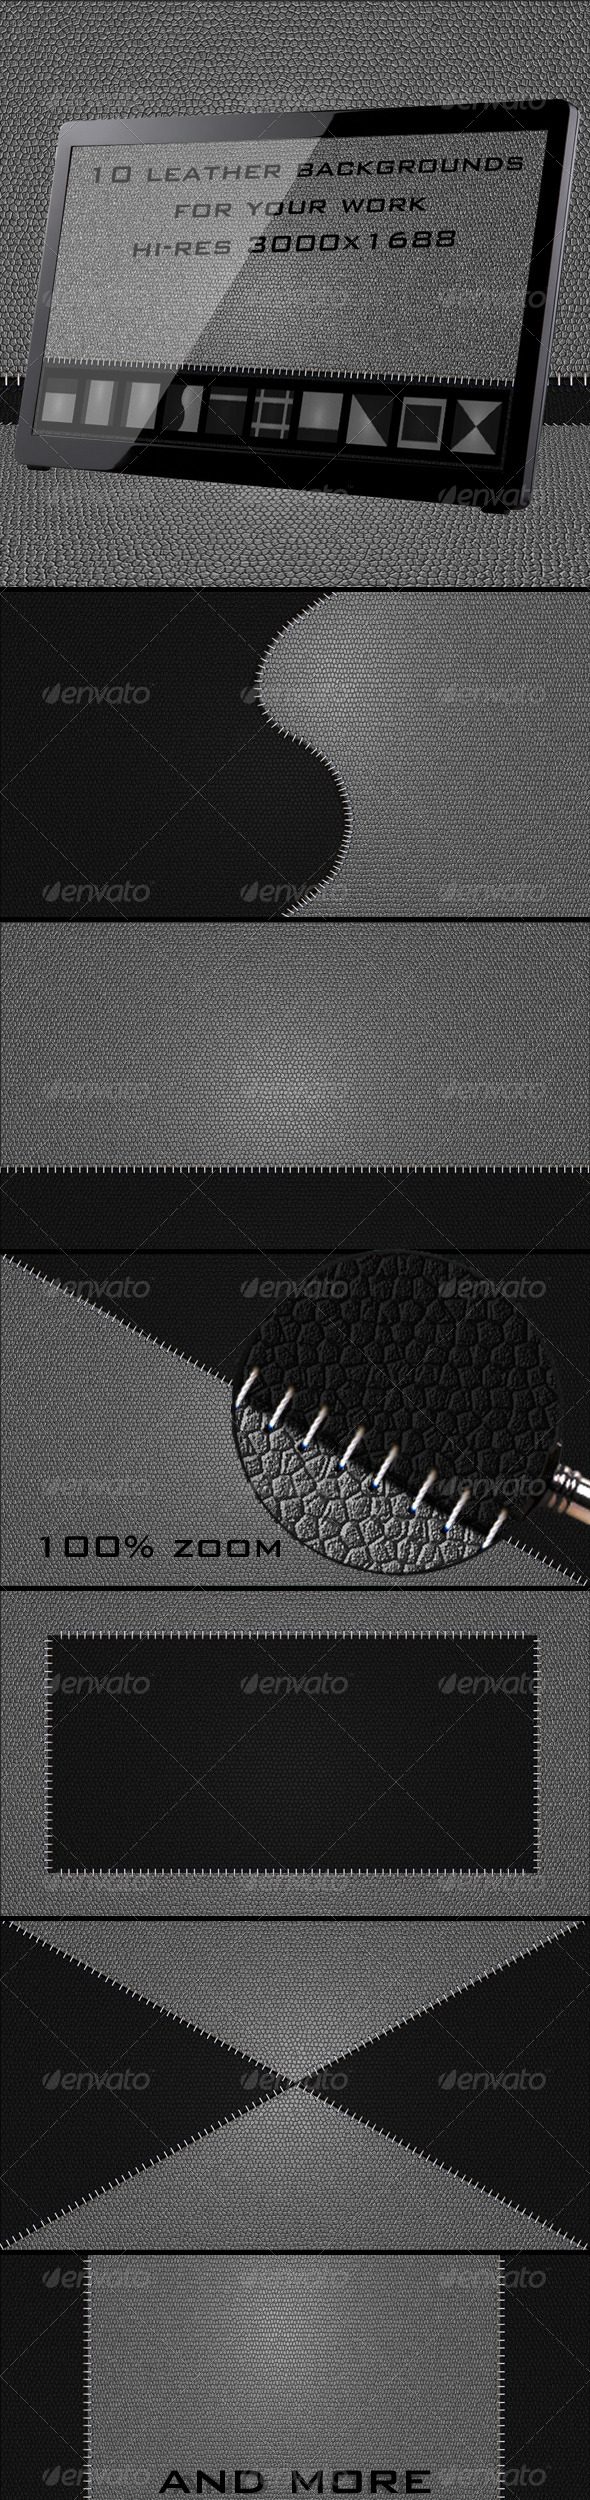 GraphicRiver 10 Leather Backgrounds 4112574